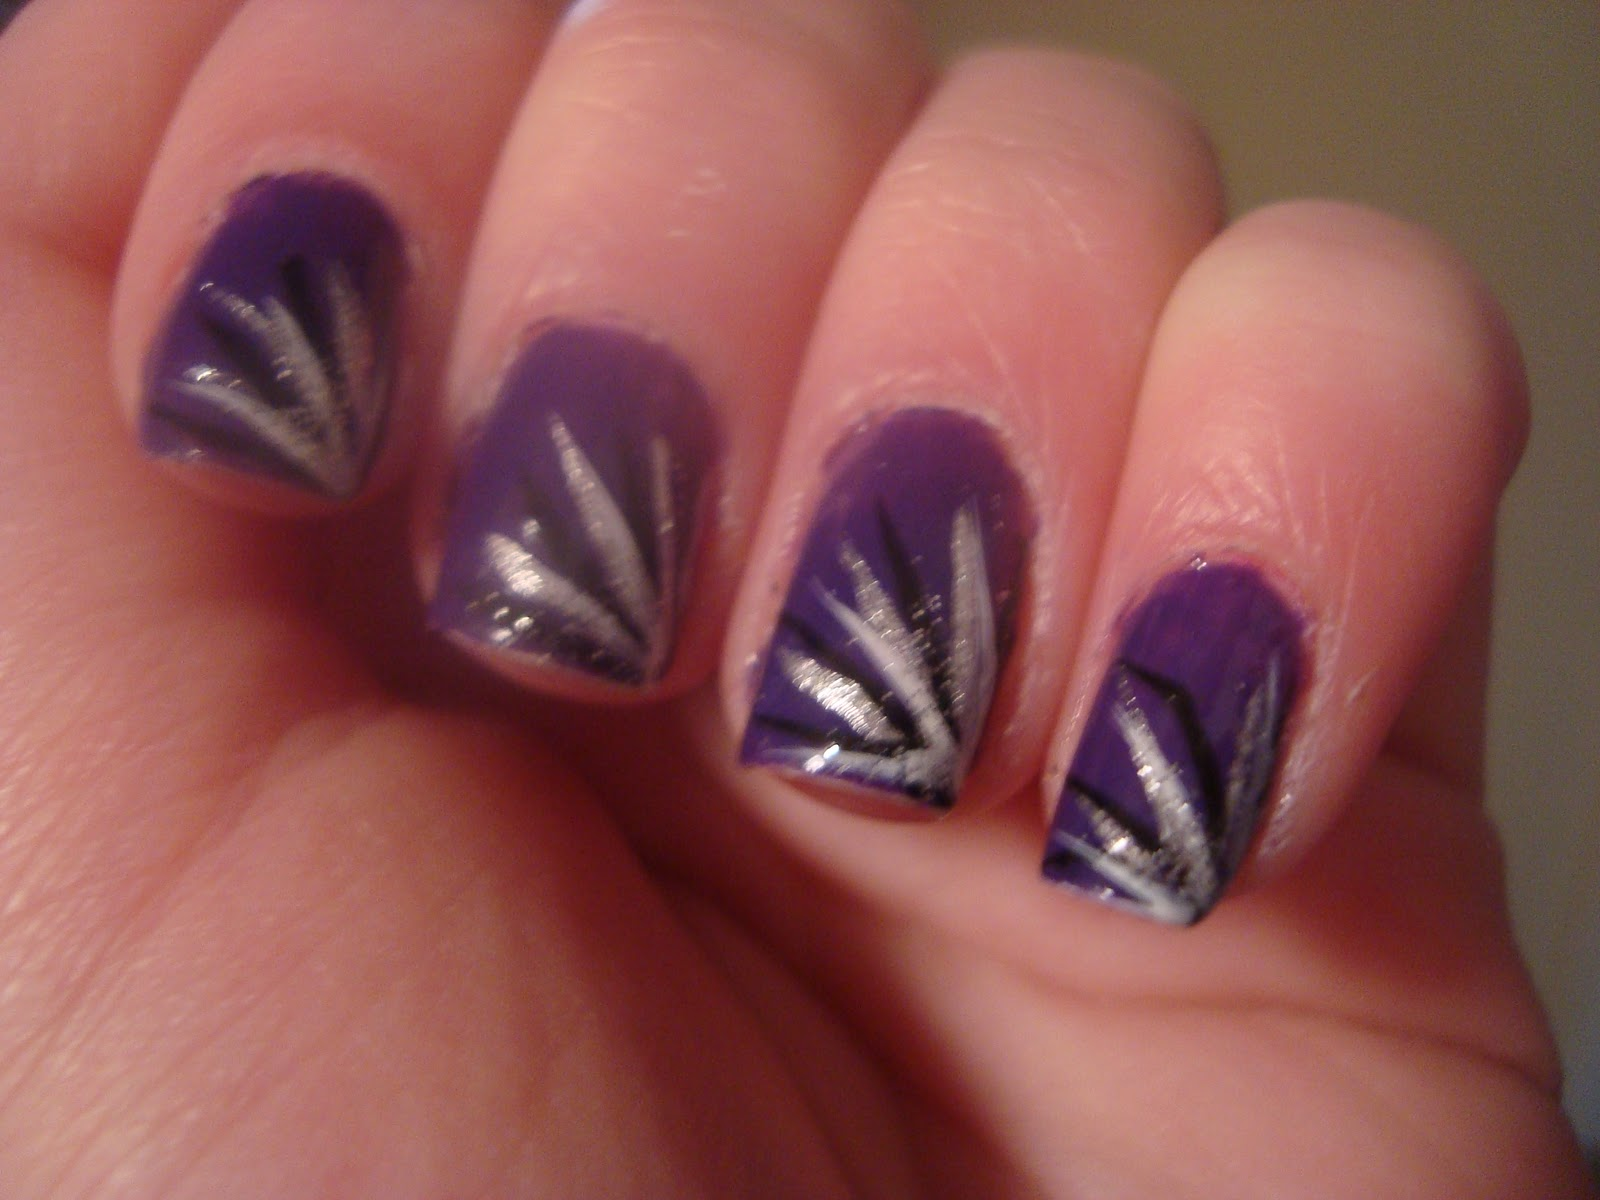 painted my nails with lines coming out from the corner of my nail